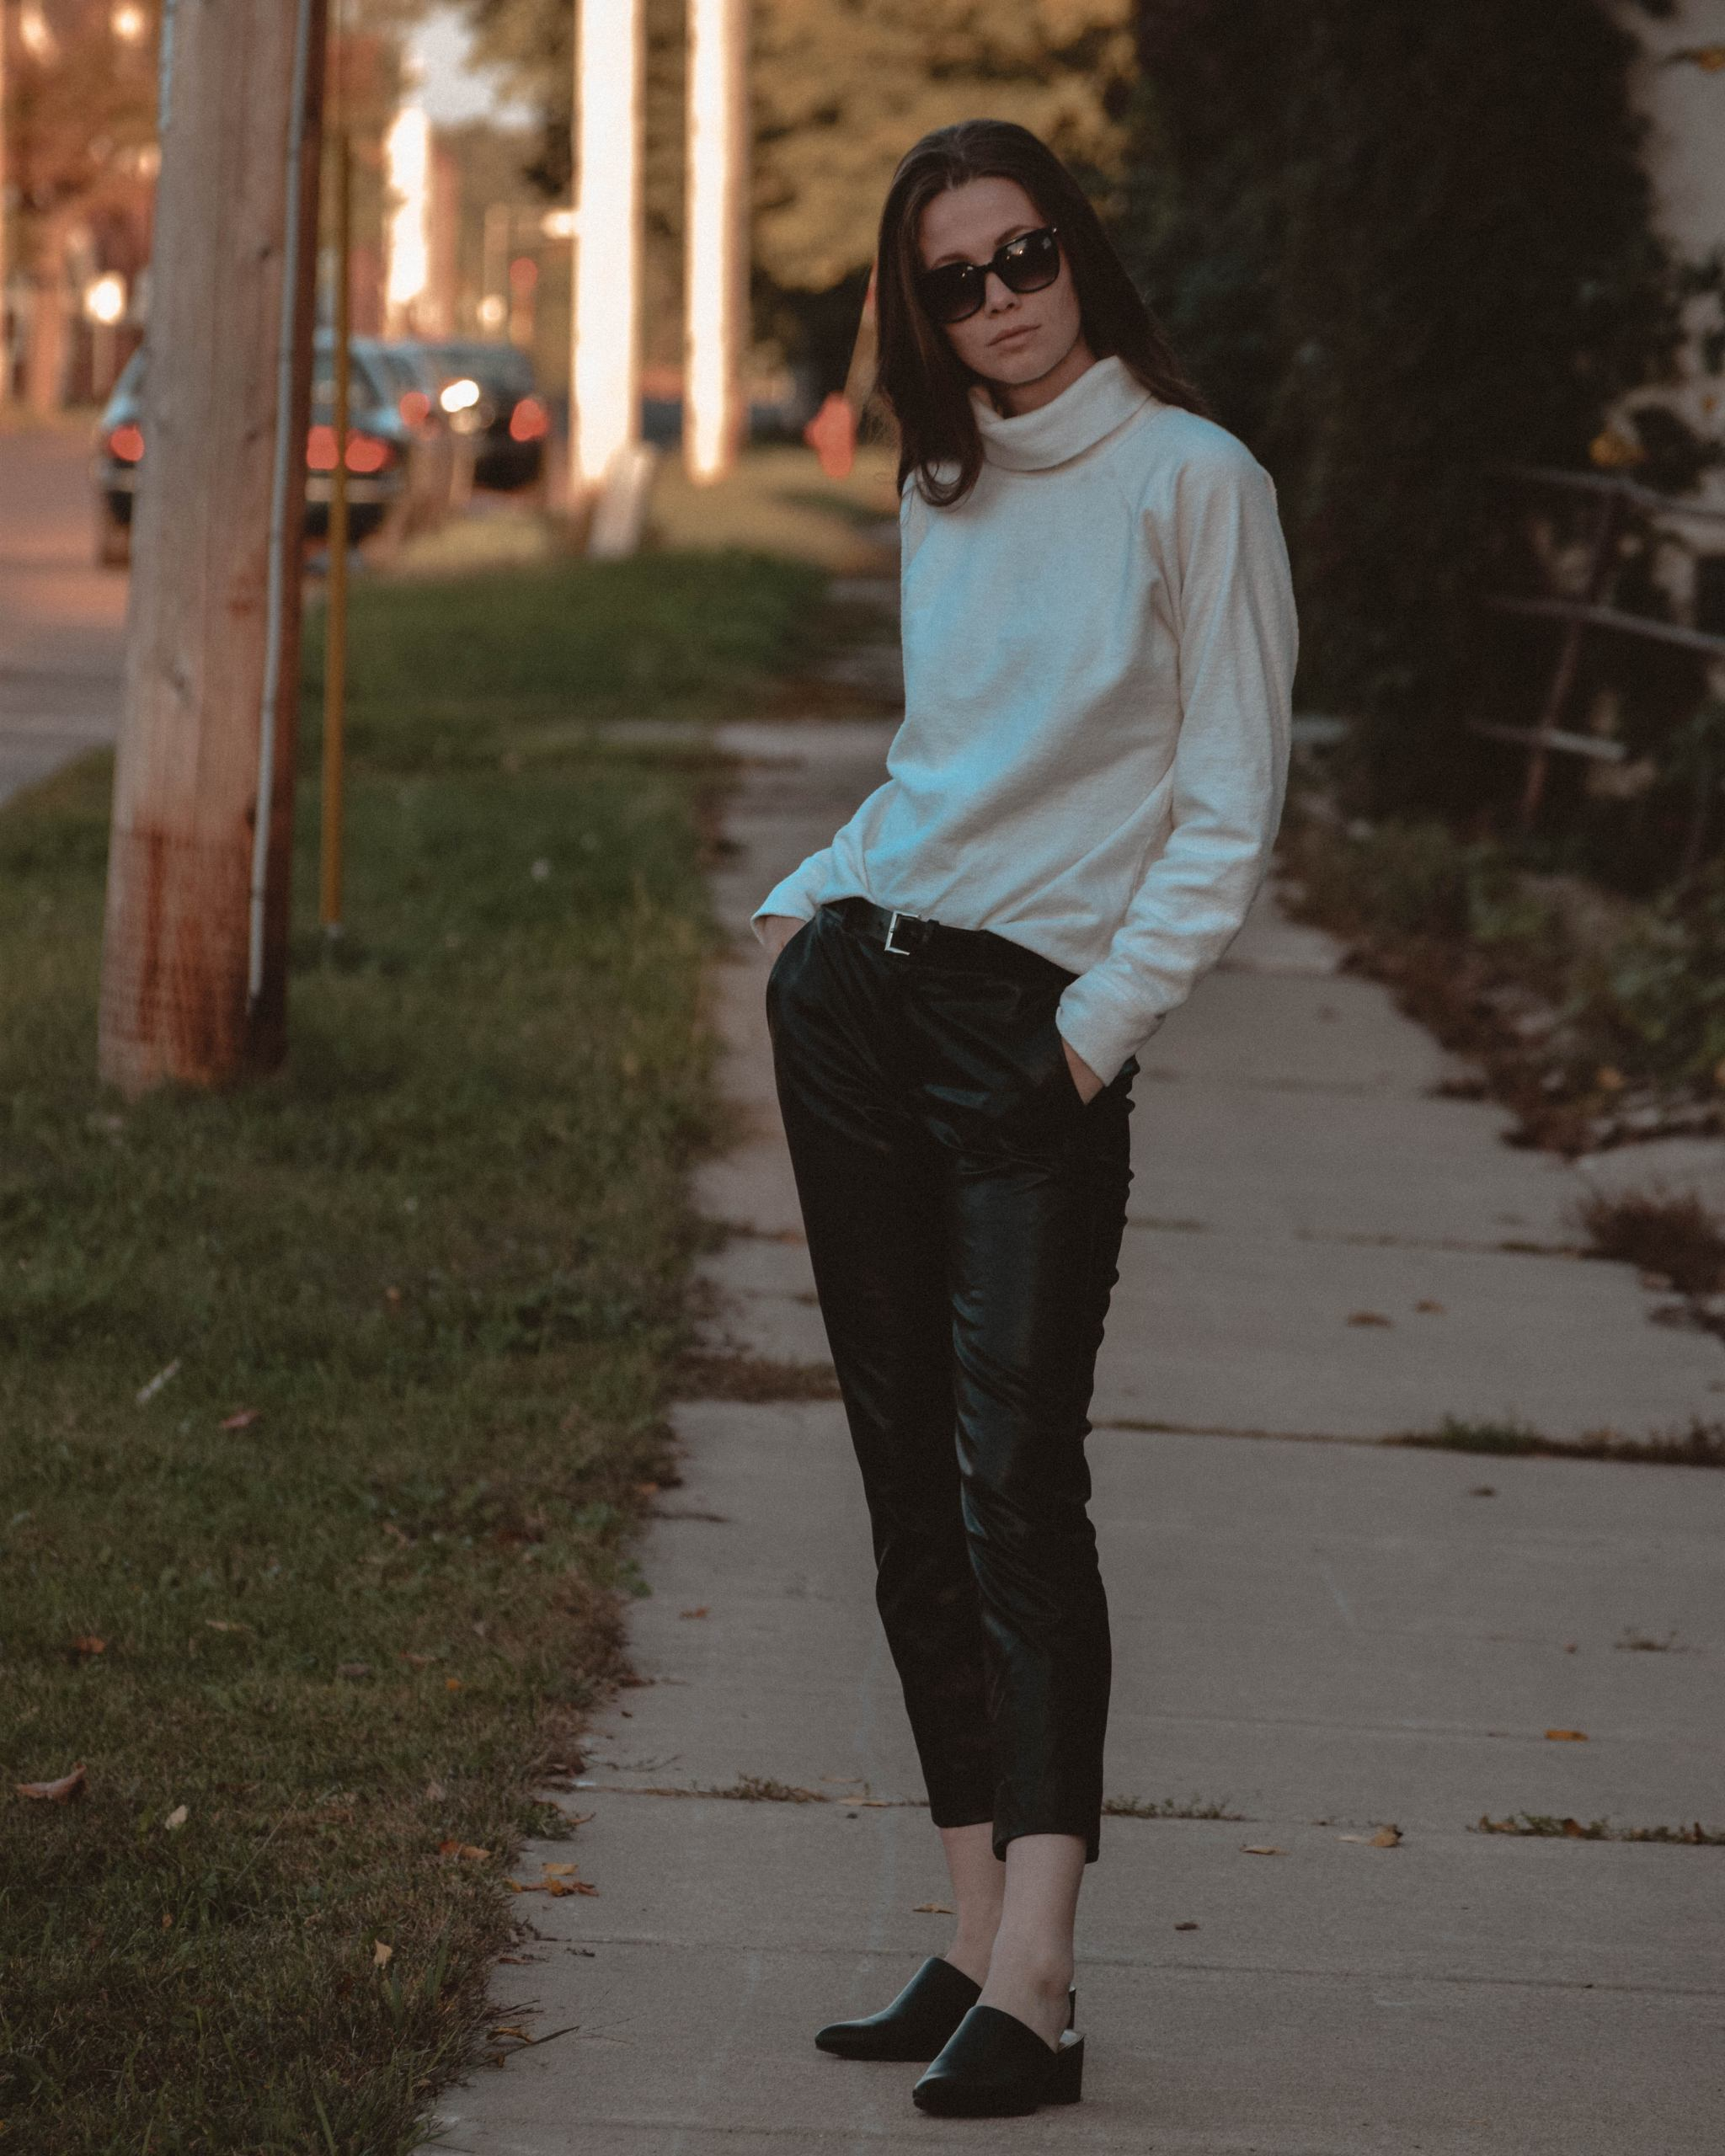 How to Find Personal Style | How to | Monochrome Minimalist | Autumn Fashion